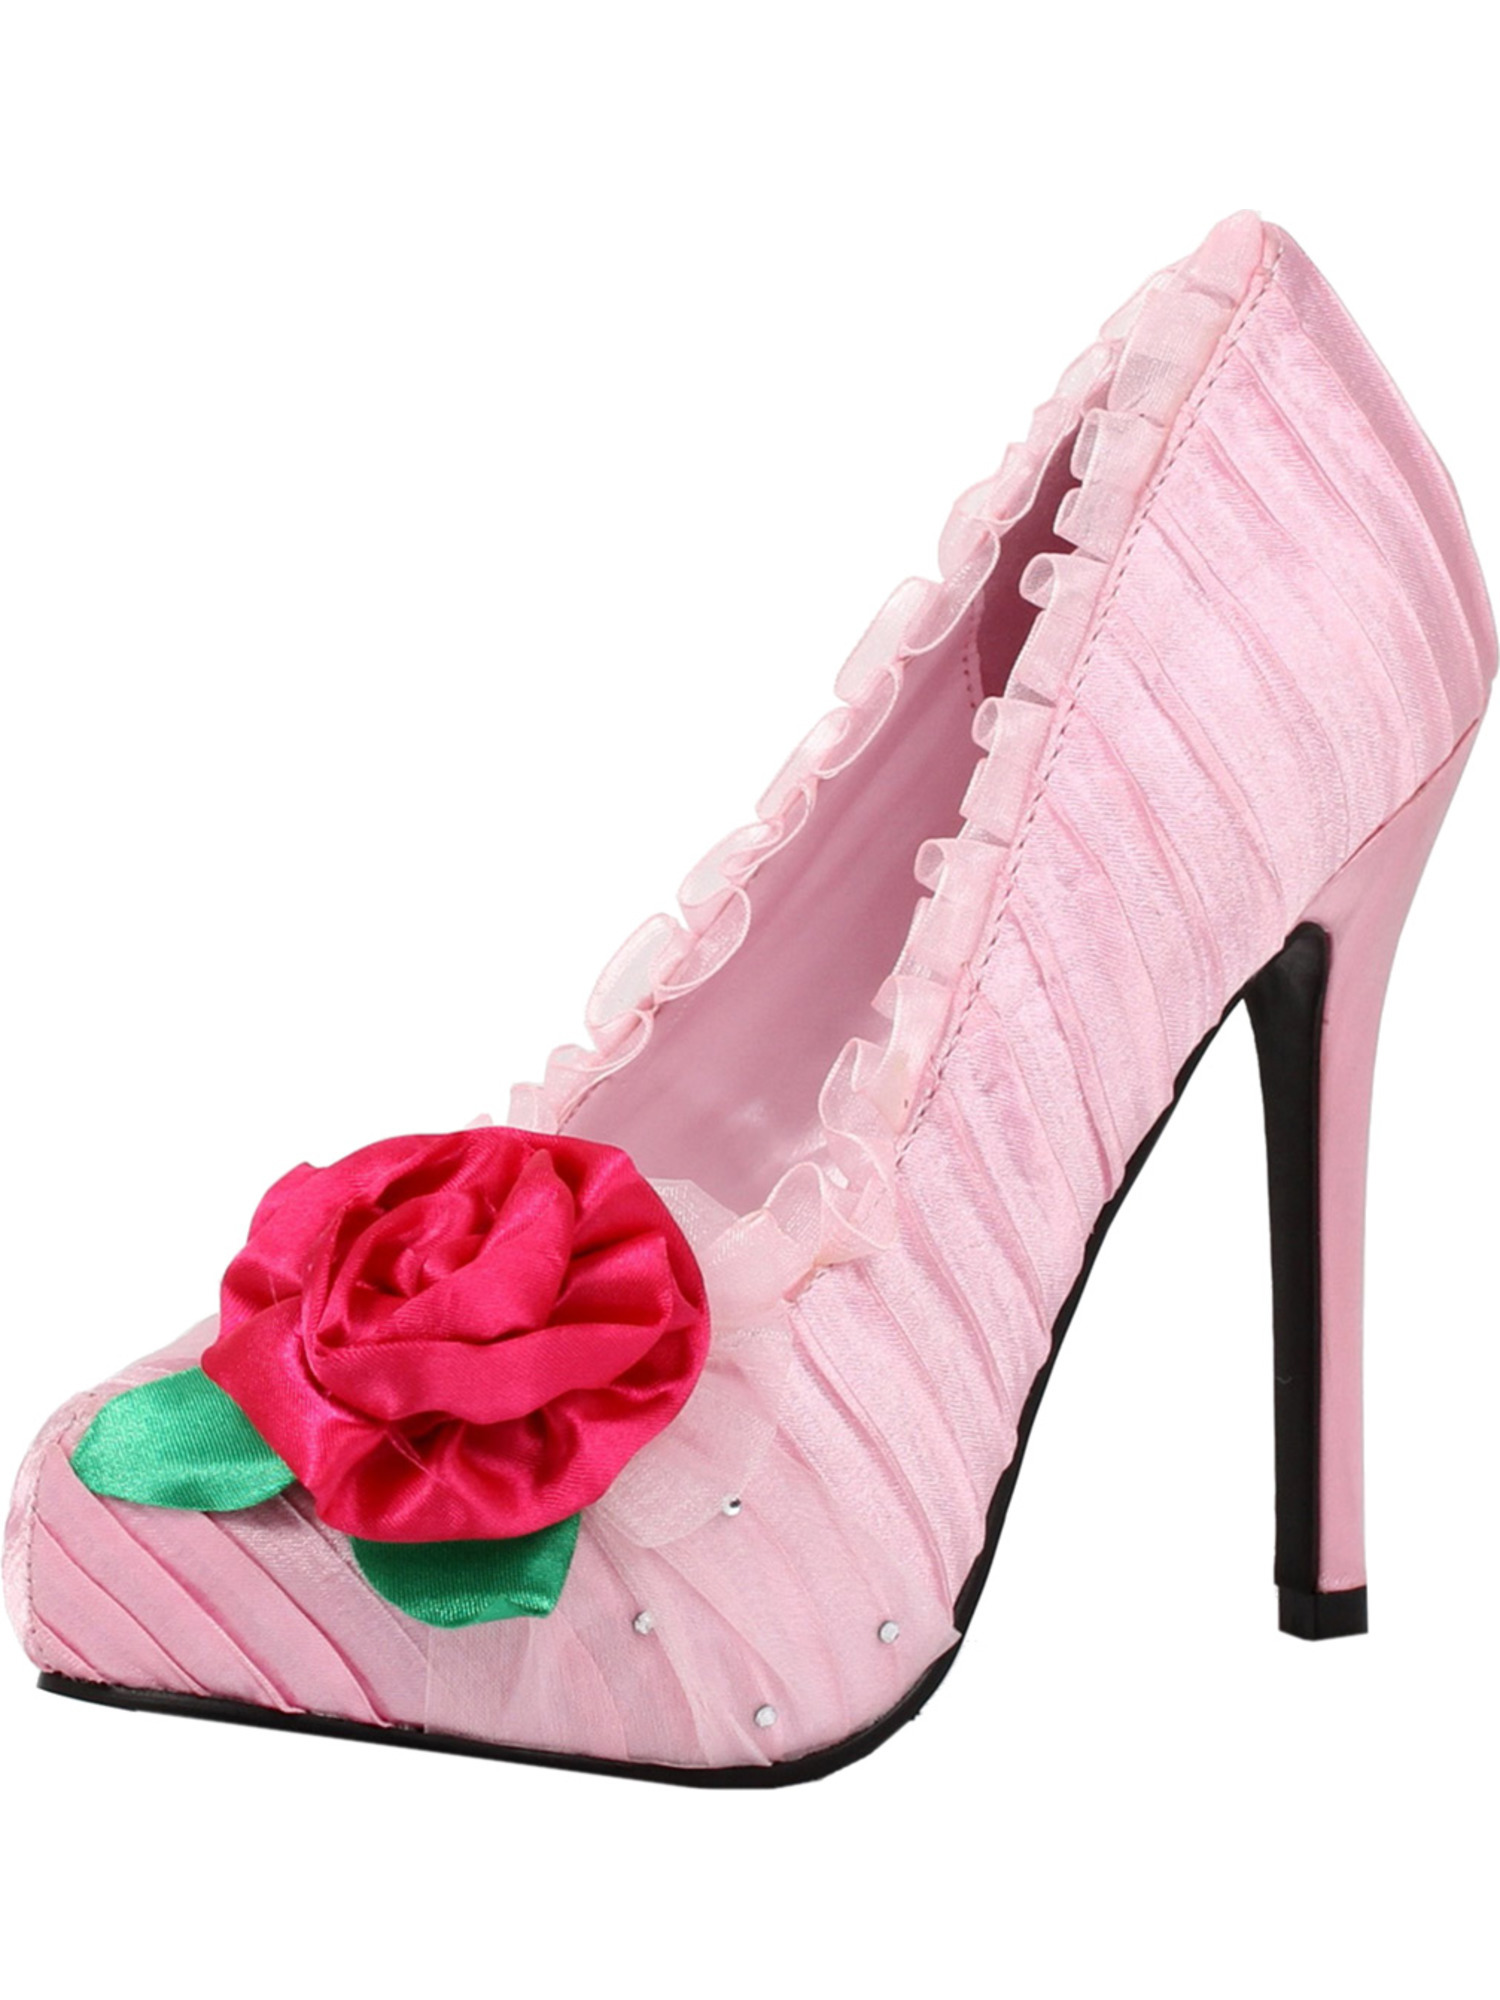 181a8be57cf Pale Pink Pumps with Hot Pink Flower and Rhinestone Detail Women's 5 Inch  Heels